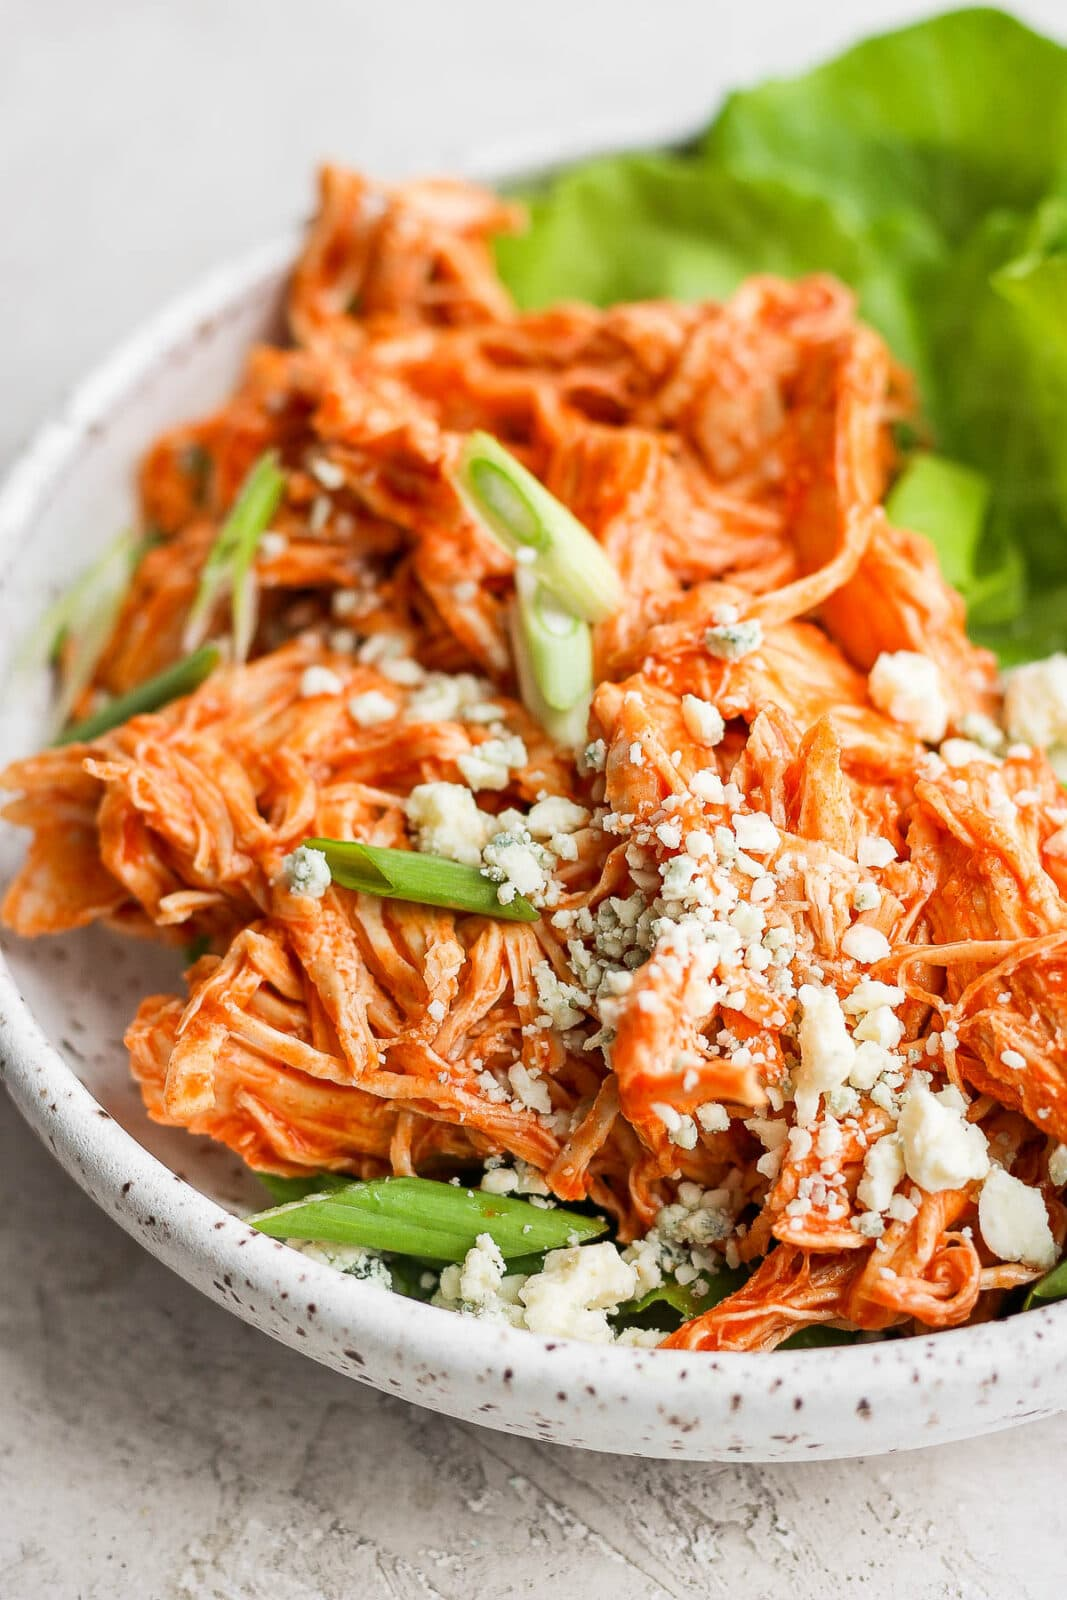 Plate of shredded buffalo chicken on butter lettuce with green onions and blue cheese crumbles.